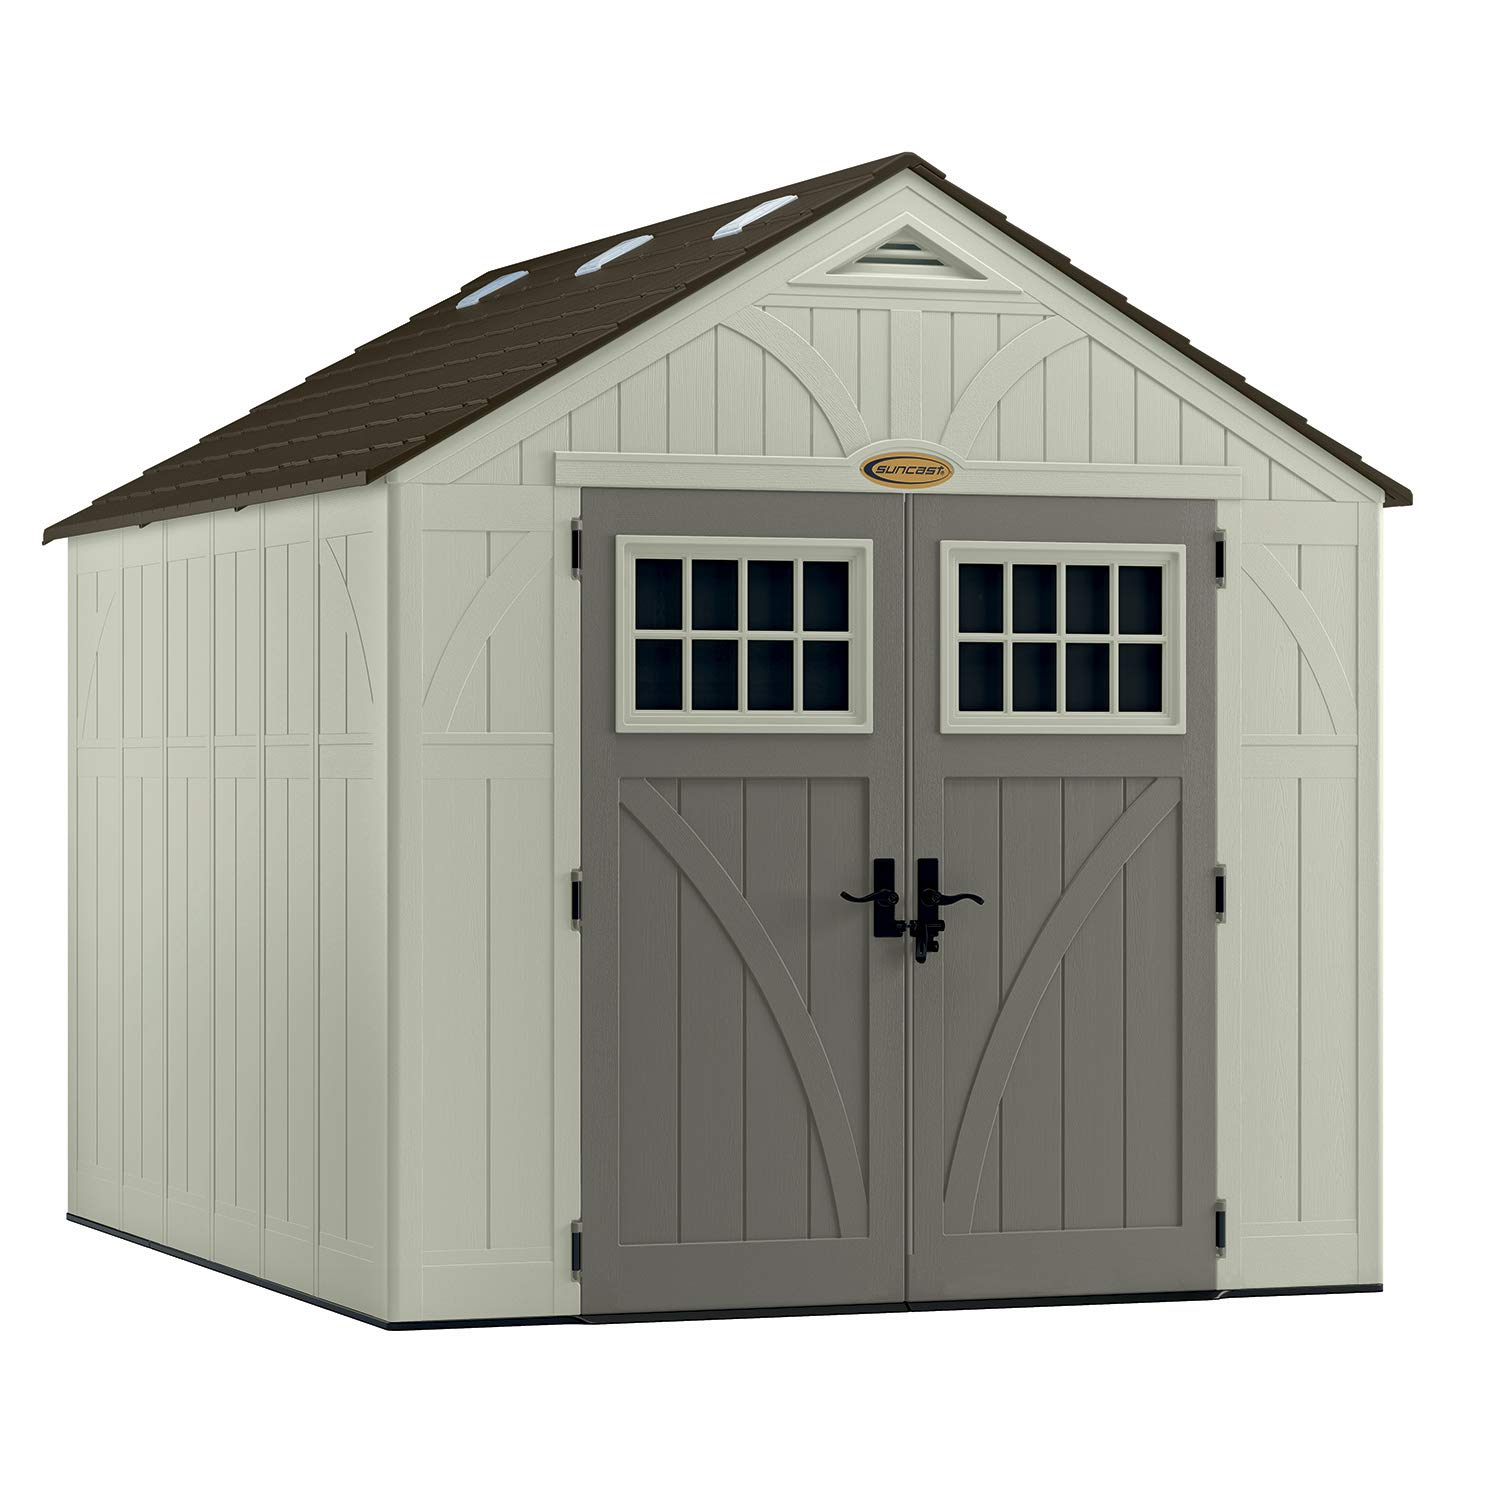 Suncast 8 x 10 Tremont Storage Shed – Outdoor Storage for Backyard Tools and Accessories – All-Weather Resin Material, Transom Windows and Shingle Style Roof